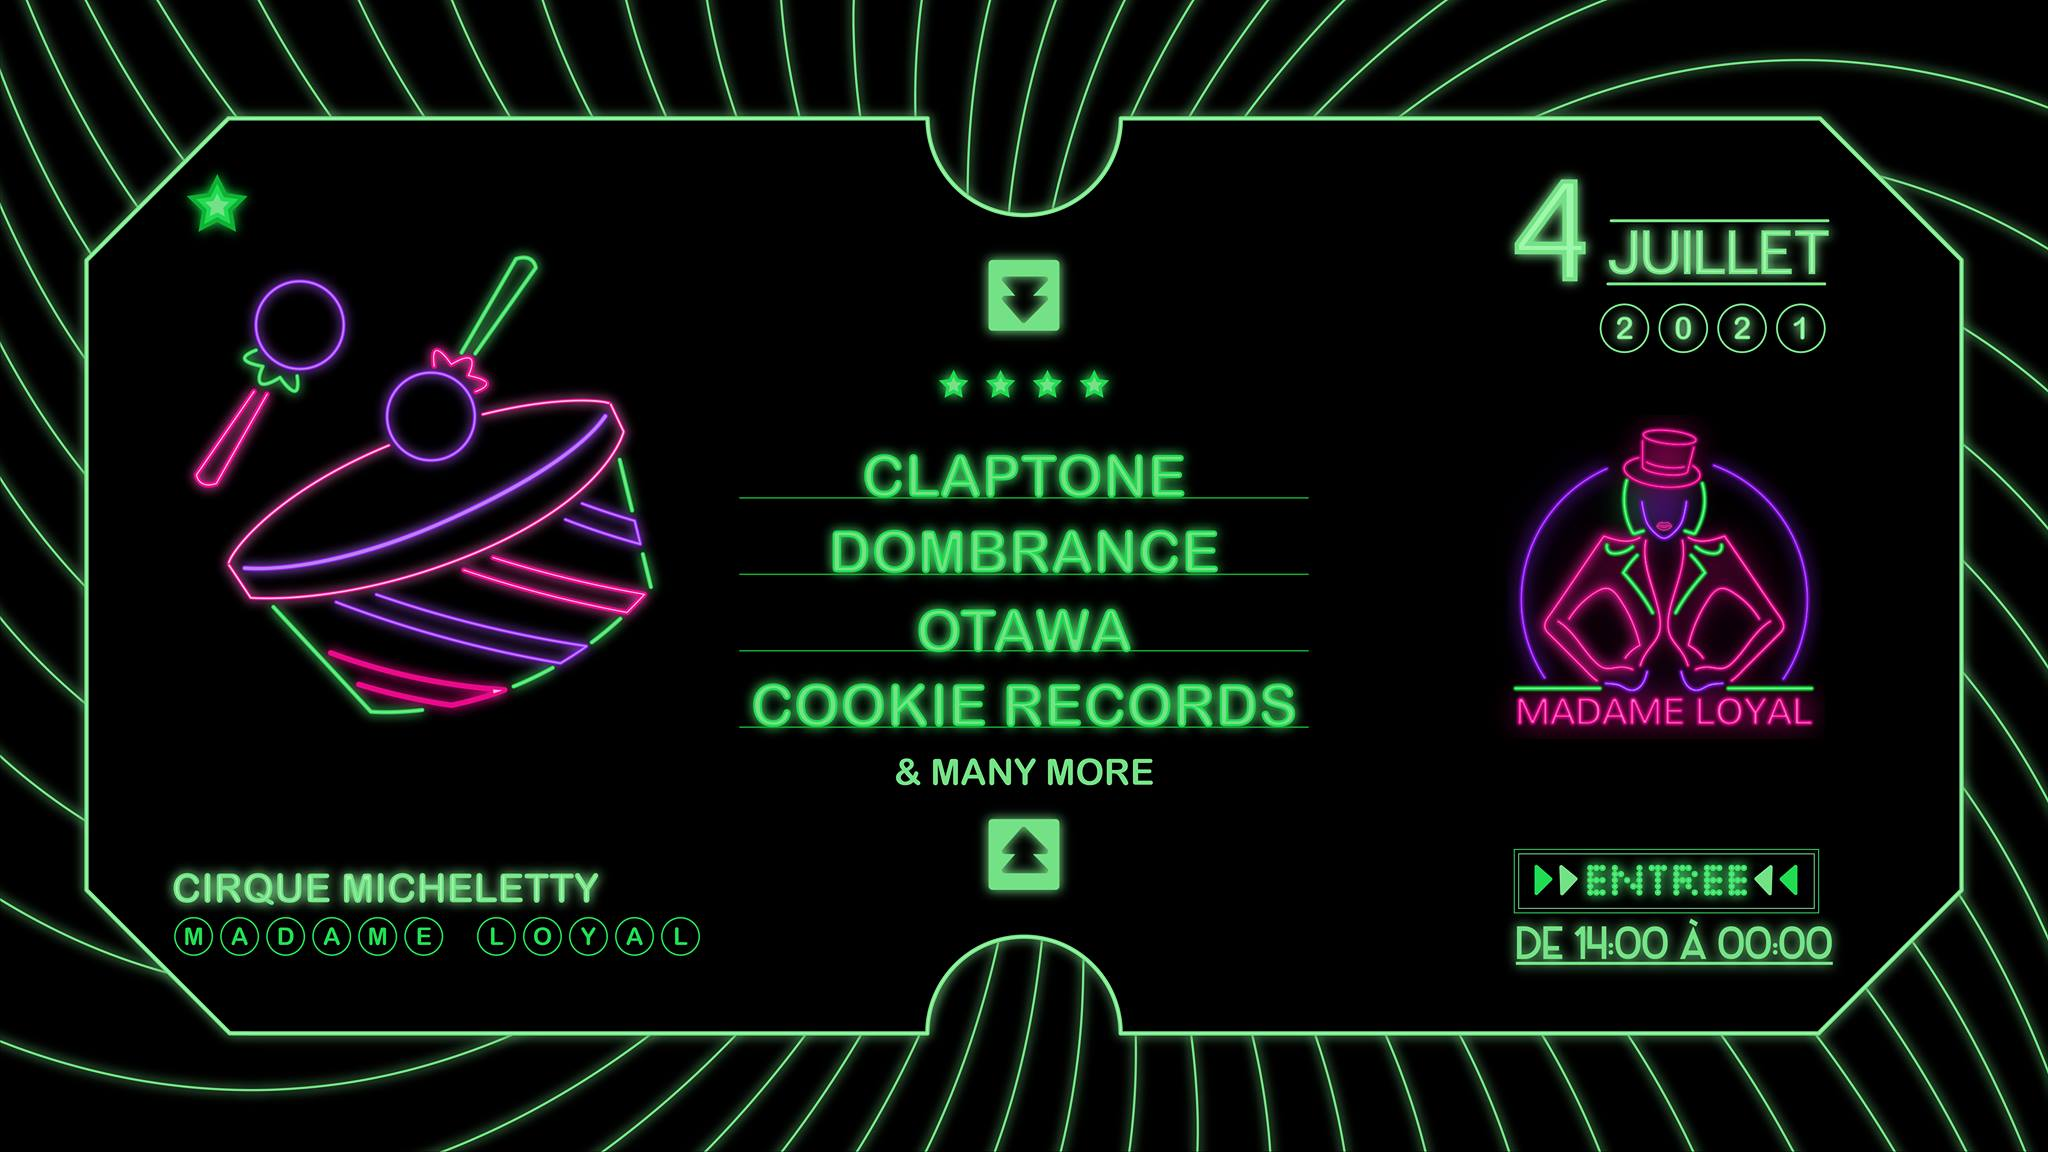 Madame Loyal : Claptone, Dombrance, Cookie Records, O'tawa & more